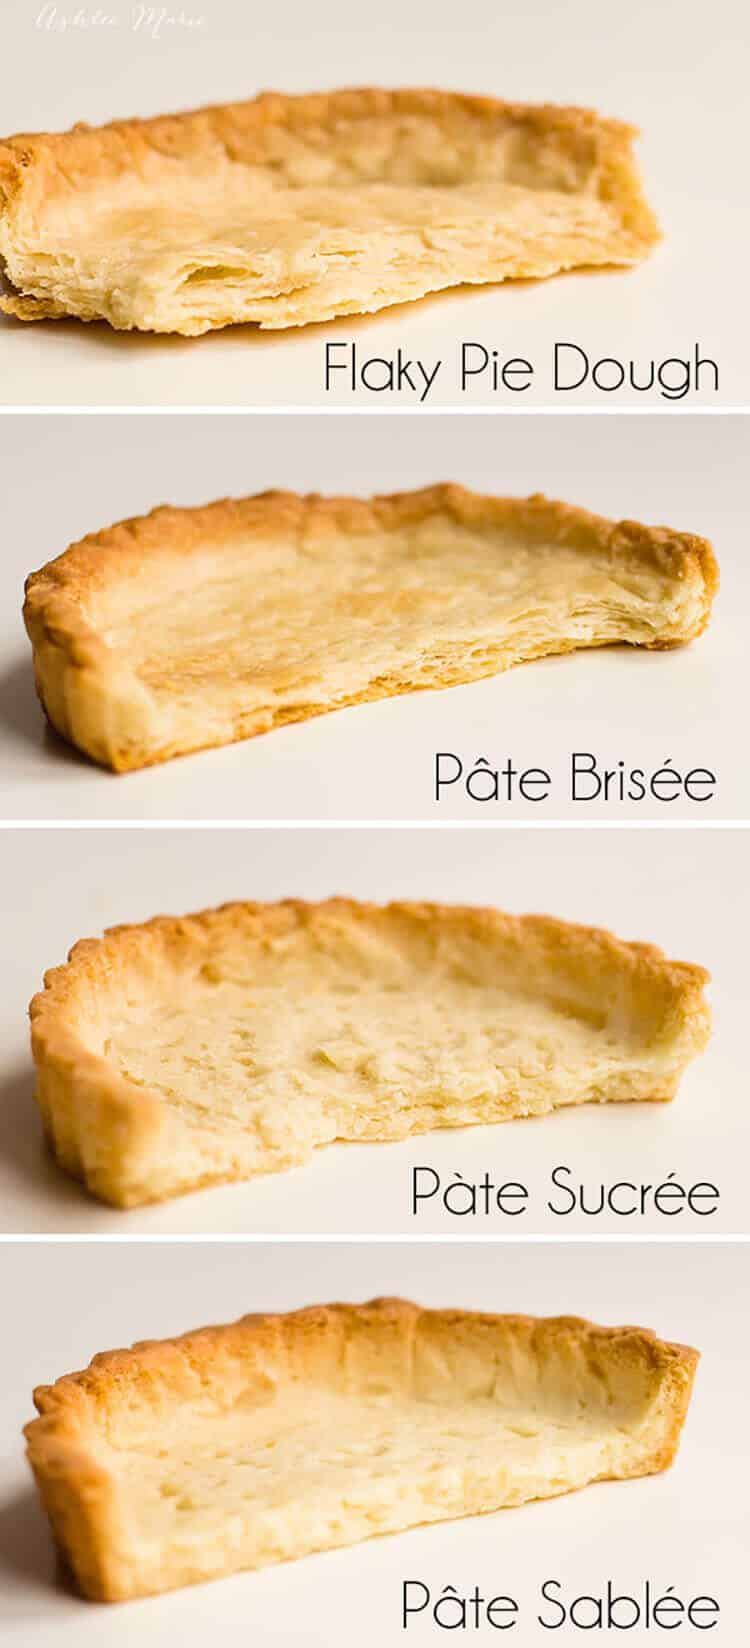 Four amazing Pie Crusts - Flaky, Brisee, Sucree, Sablee ...